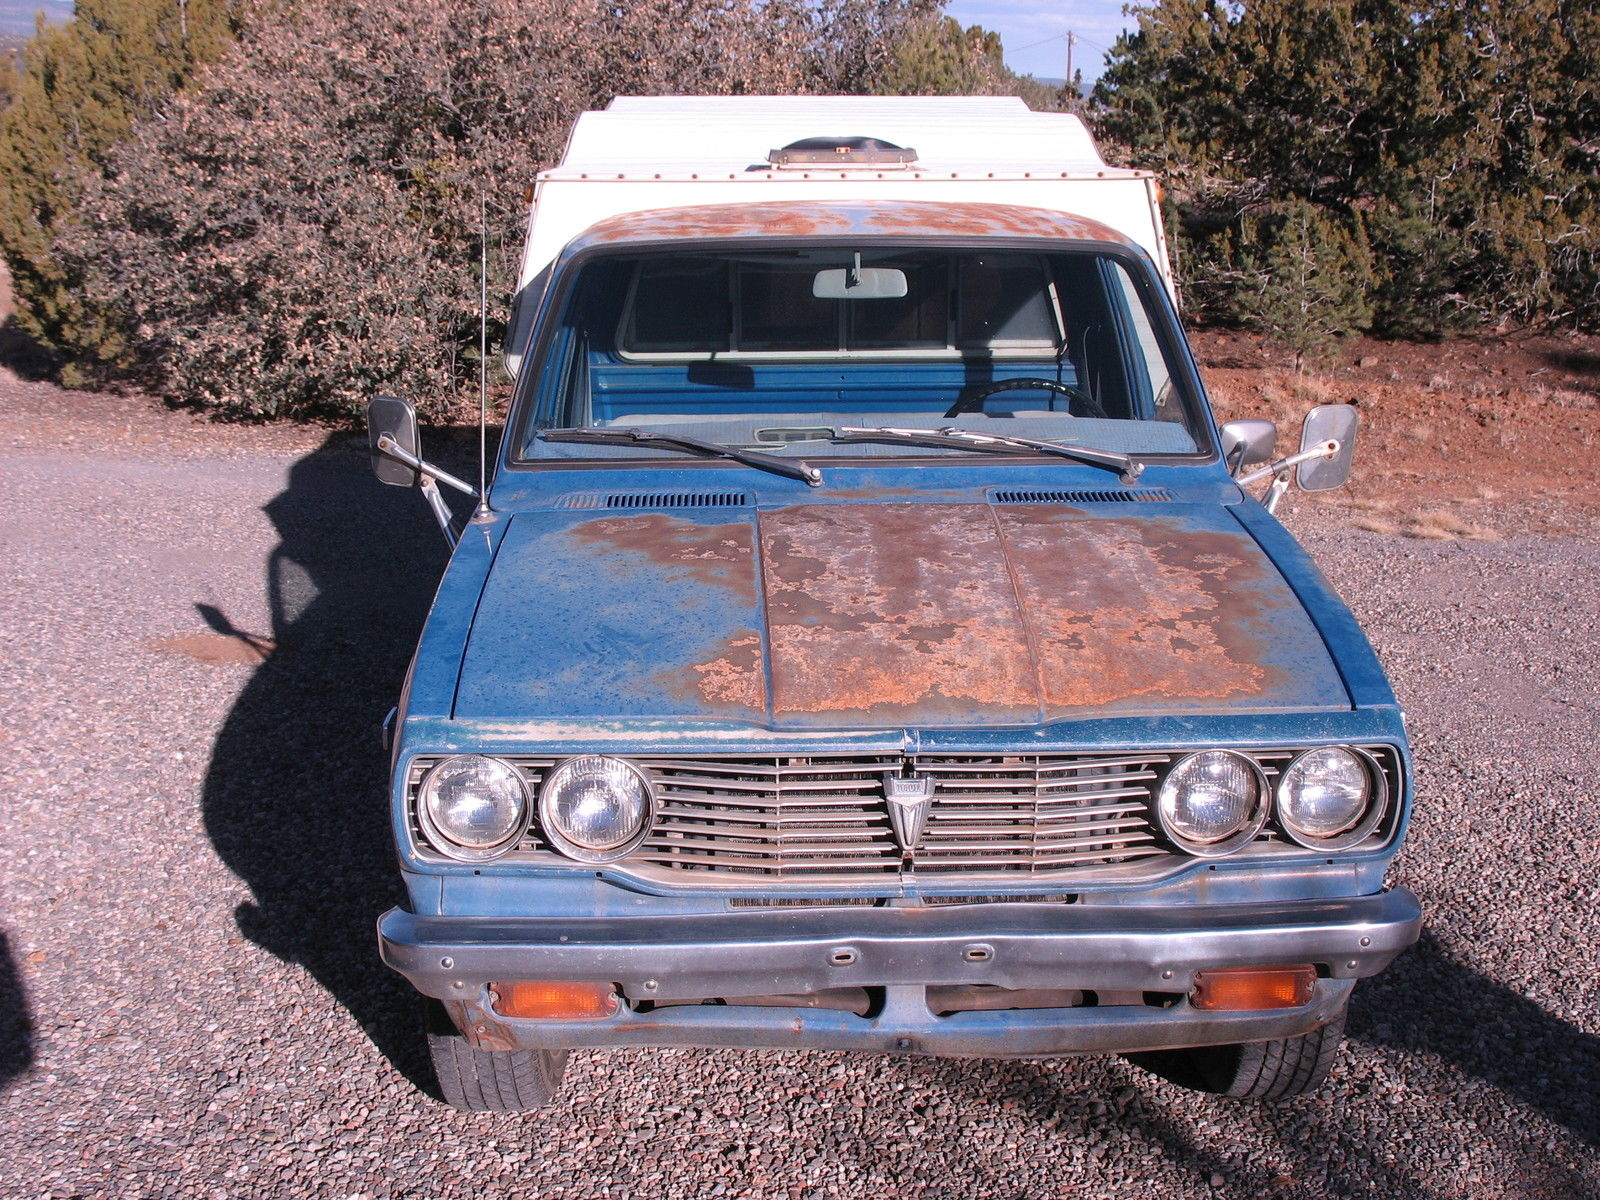 1978 toyota pickup truck 20r 4 cylinder engine working good condition classic toyota other. Black Bedroom Furniture Sets. Home Design Ideas